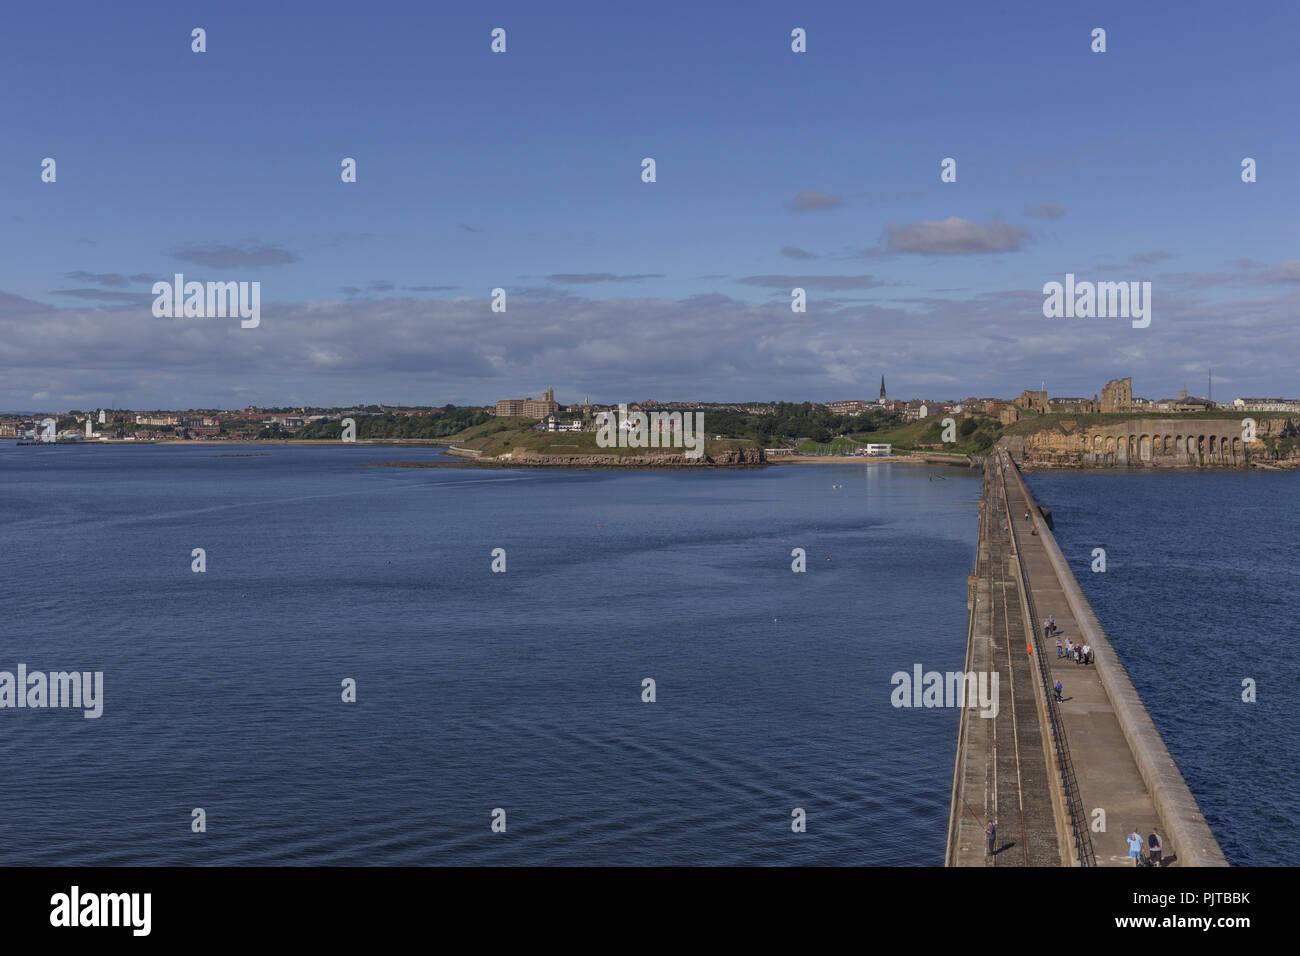 Looking towards Tynemouth from the top of the pier. Stock Photo